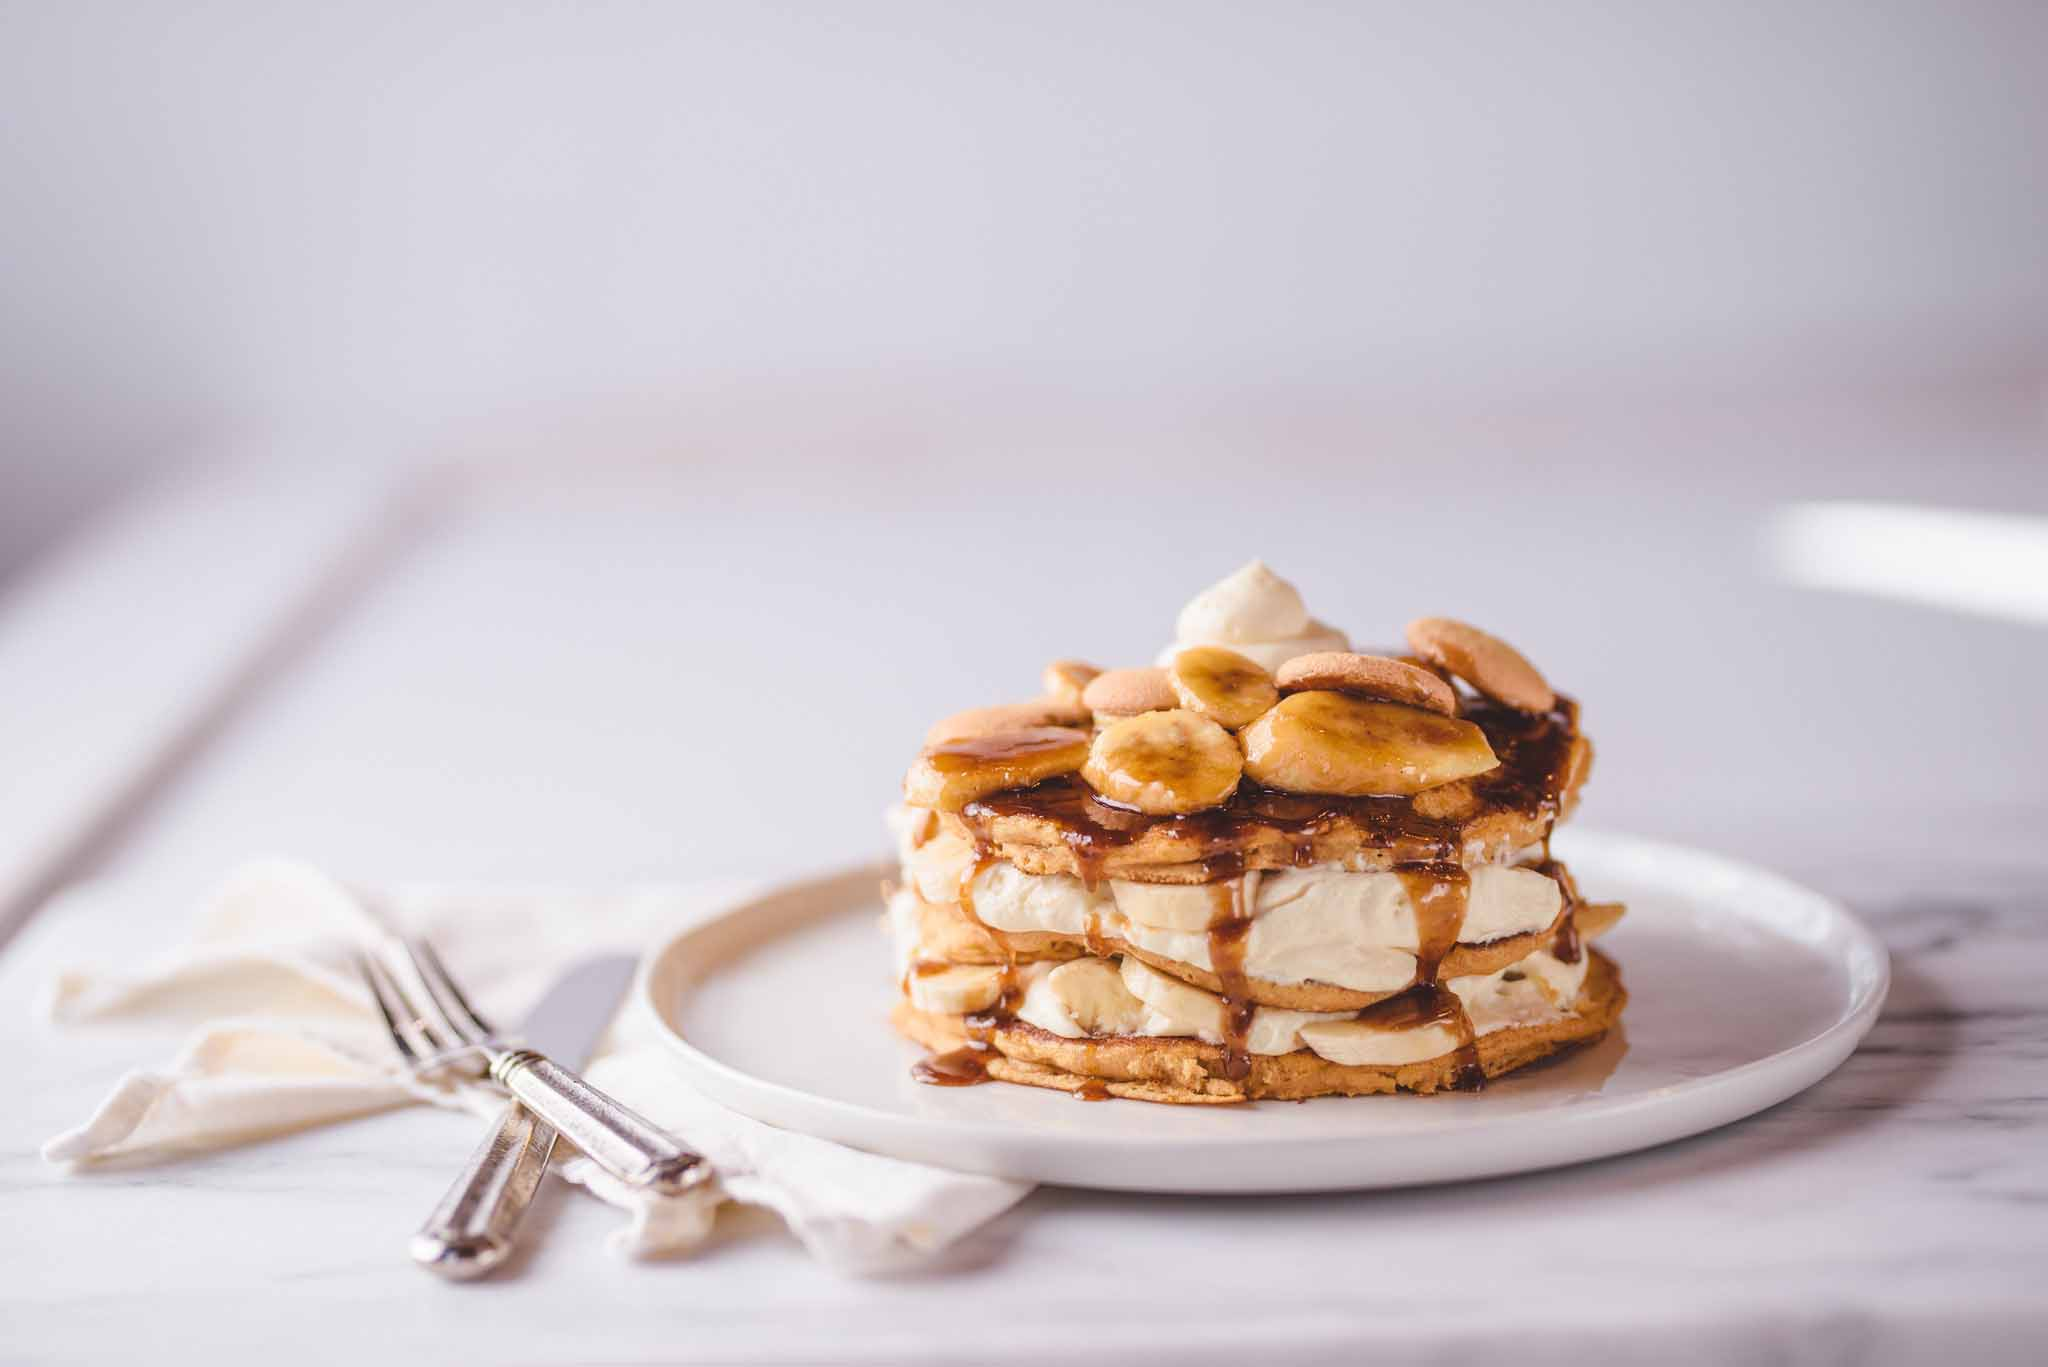 BANANA PUDDING LAYERED PANCAKES foster rum sauce